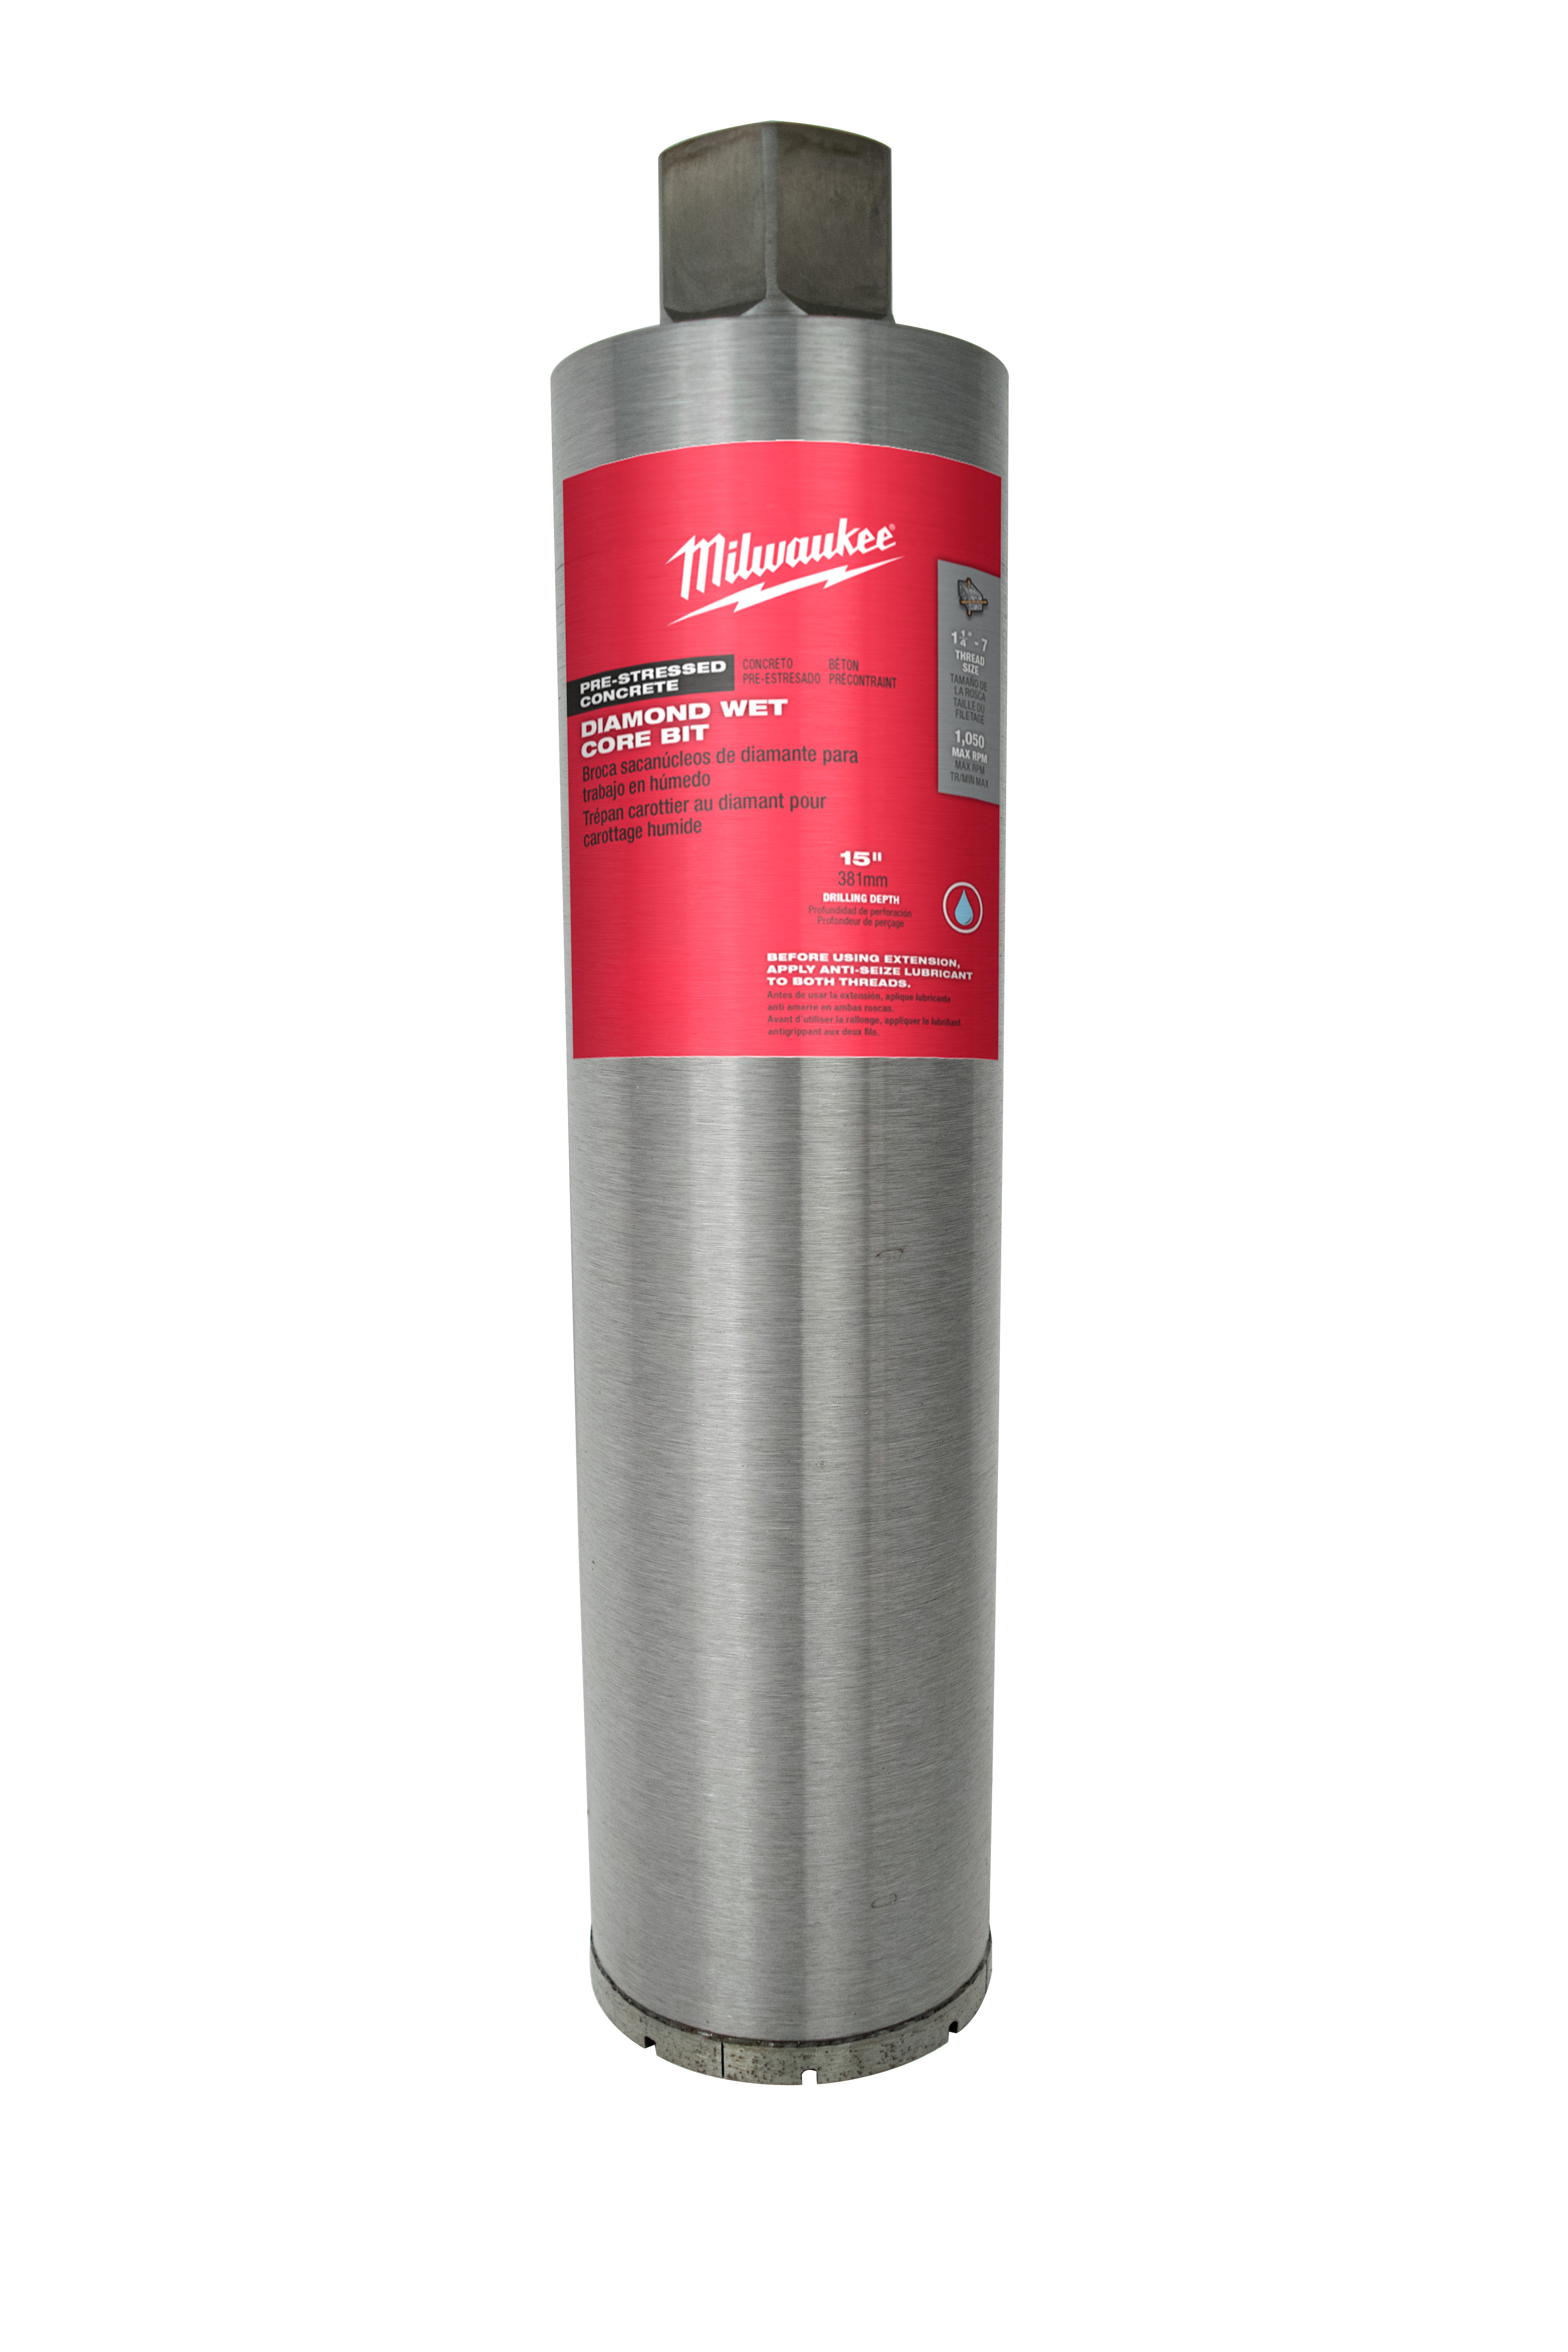 Milwaukee® 48-17-1045 Pre-Stressed Wet Core Bit, 4-1/2 in Drill - Fraction, 4.5 in Drill - Decimal Inch